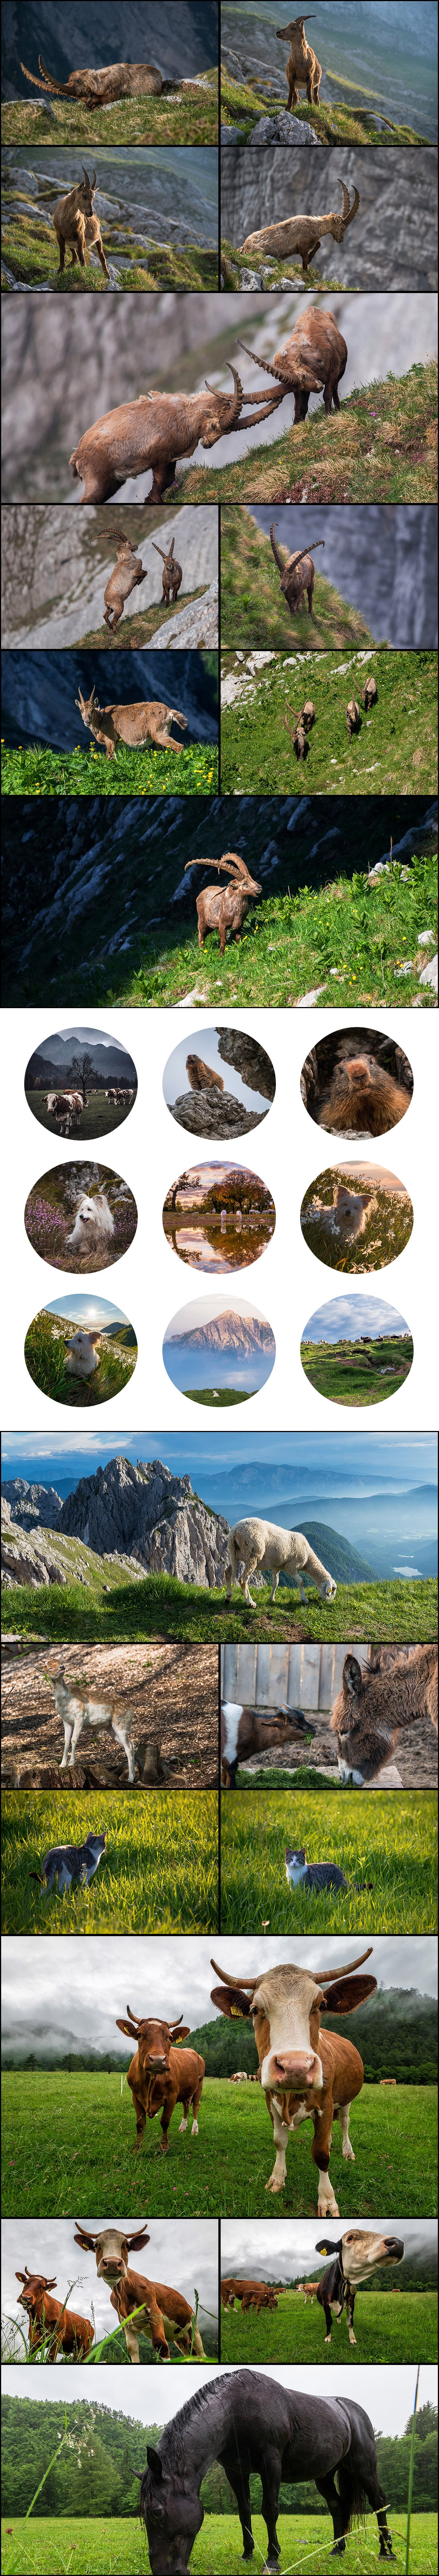 500+ Stock Images. Ultimate Photo Bundle  – $59 - PREVIEW animals1